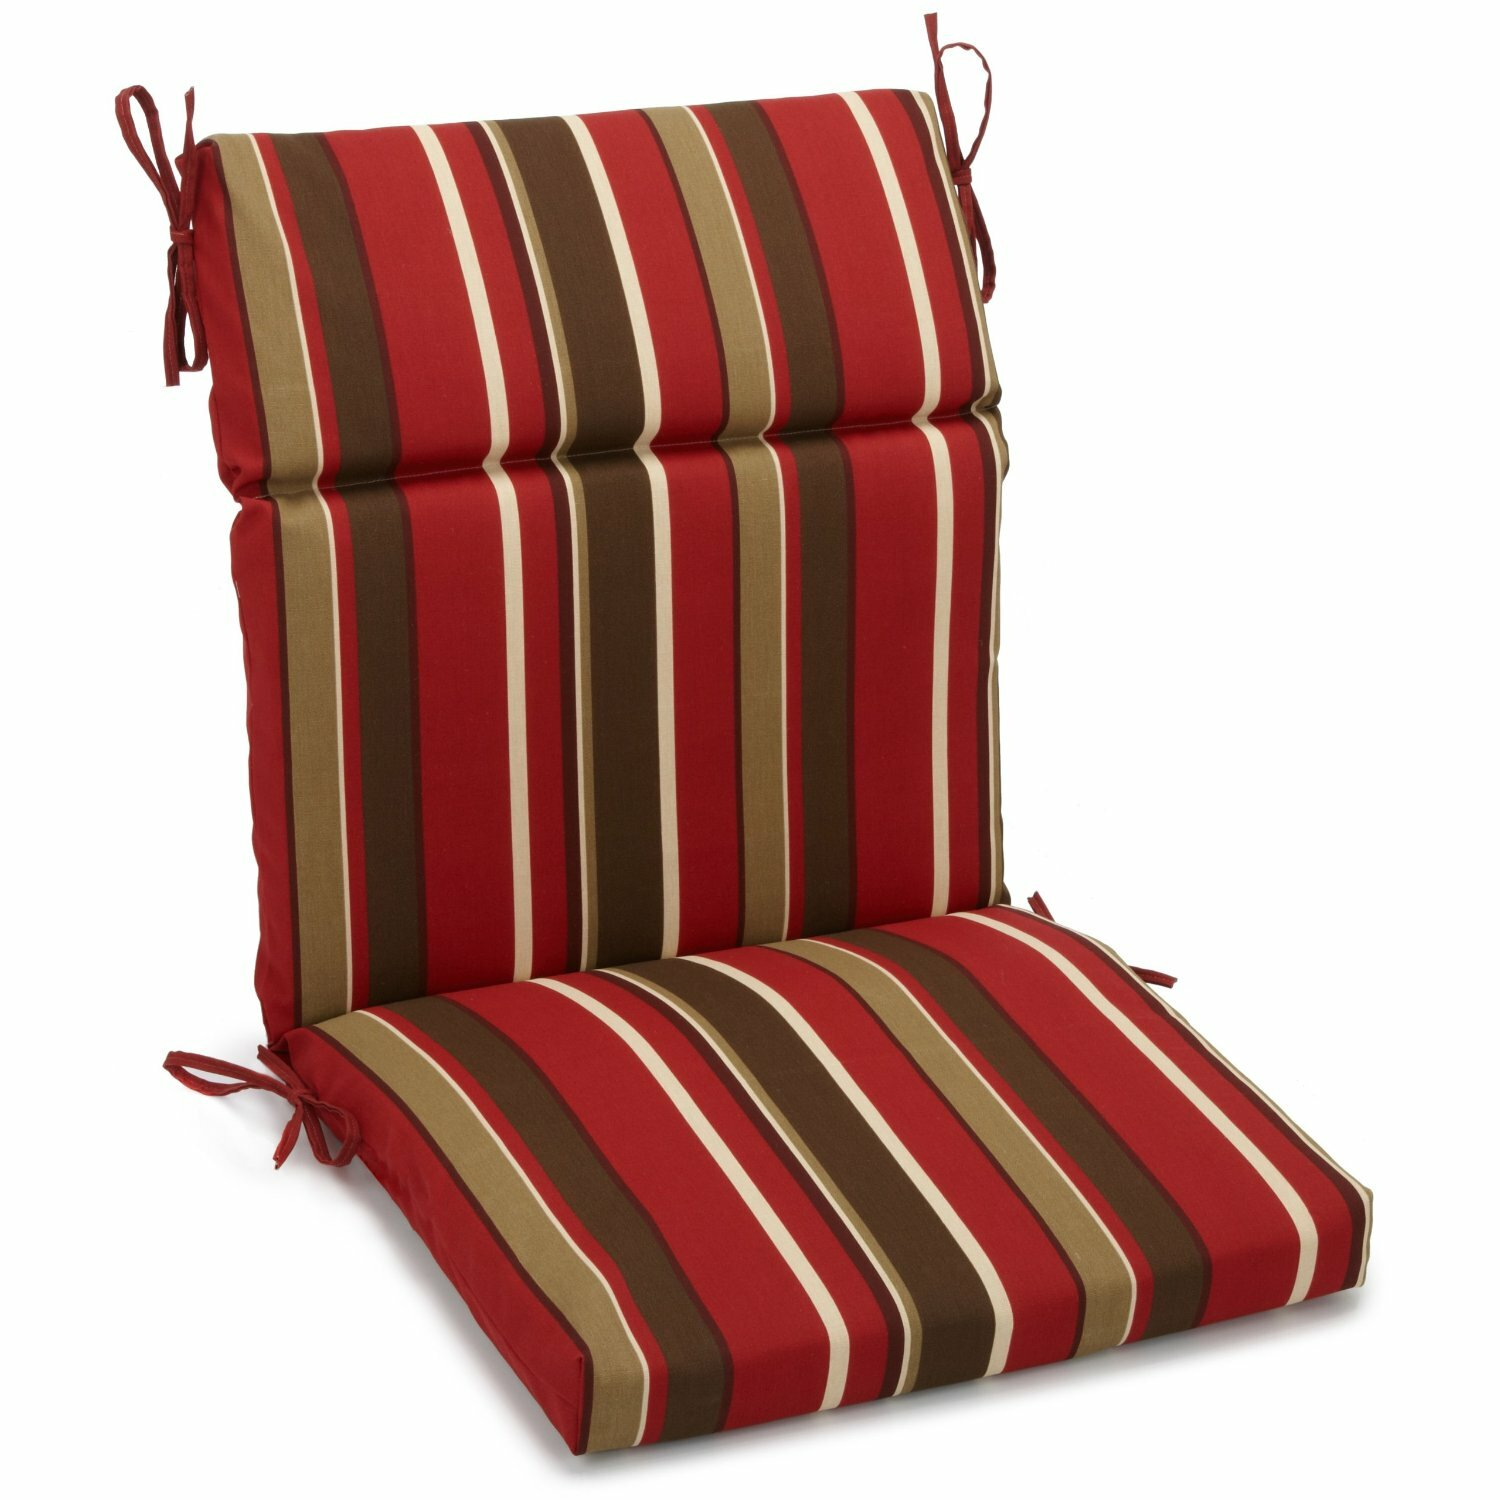 Blazing Needles Monserrat Outdoor Lounge Chair Cushion & Reviews